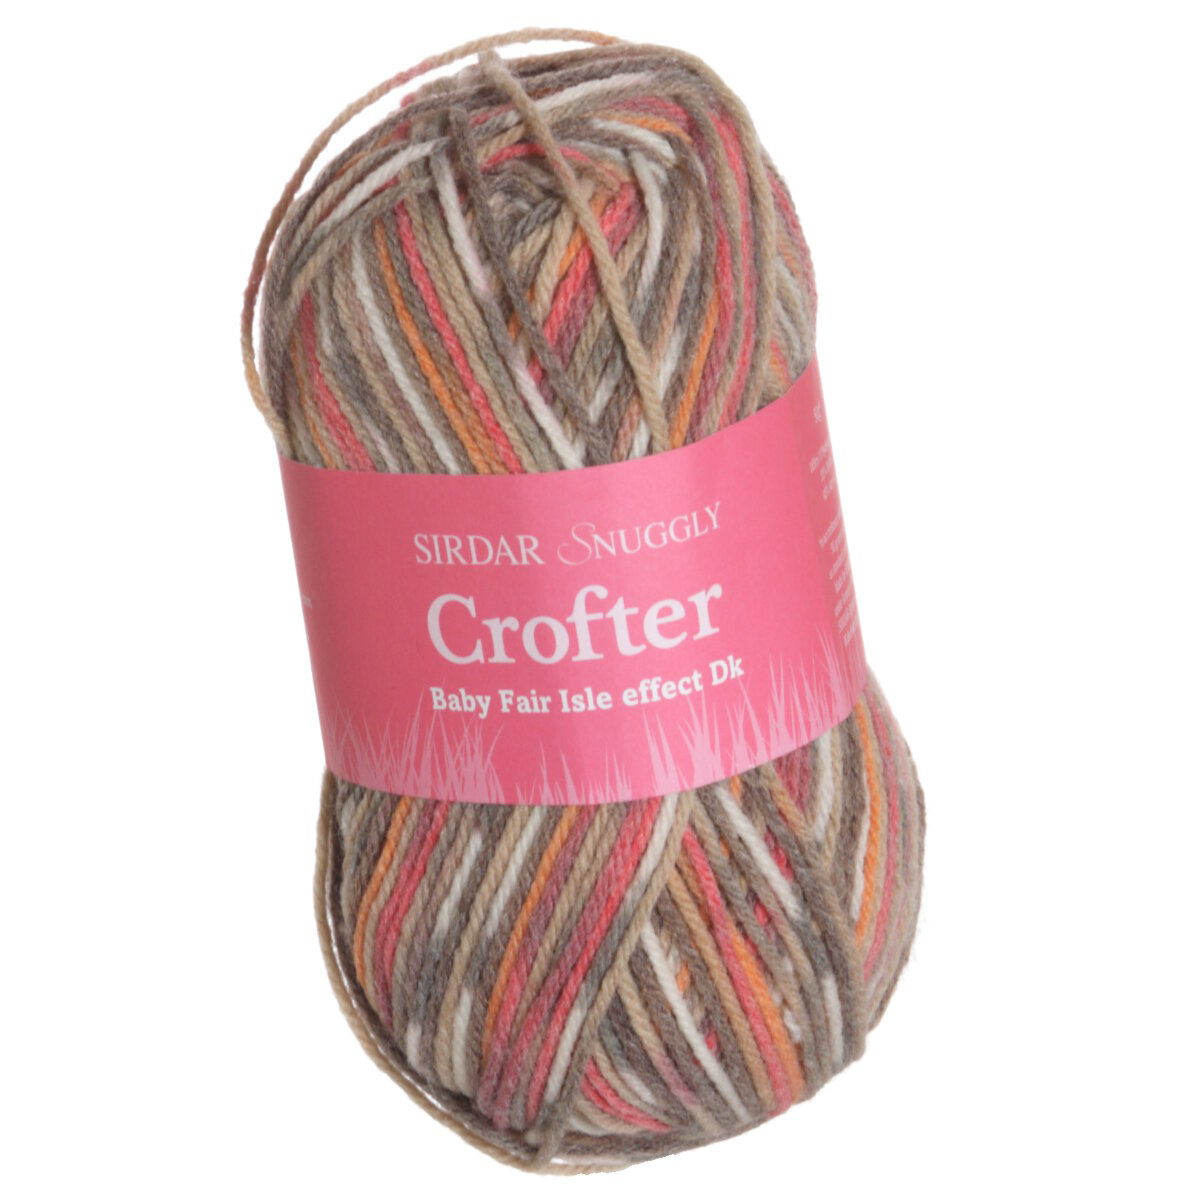 Sirdar Snuggly Baby Crofter Dk Yarn 0192 Bertie Video